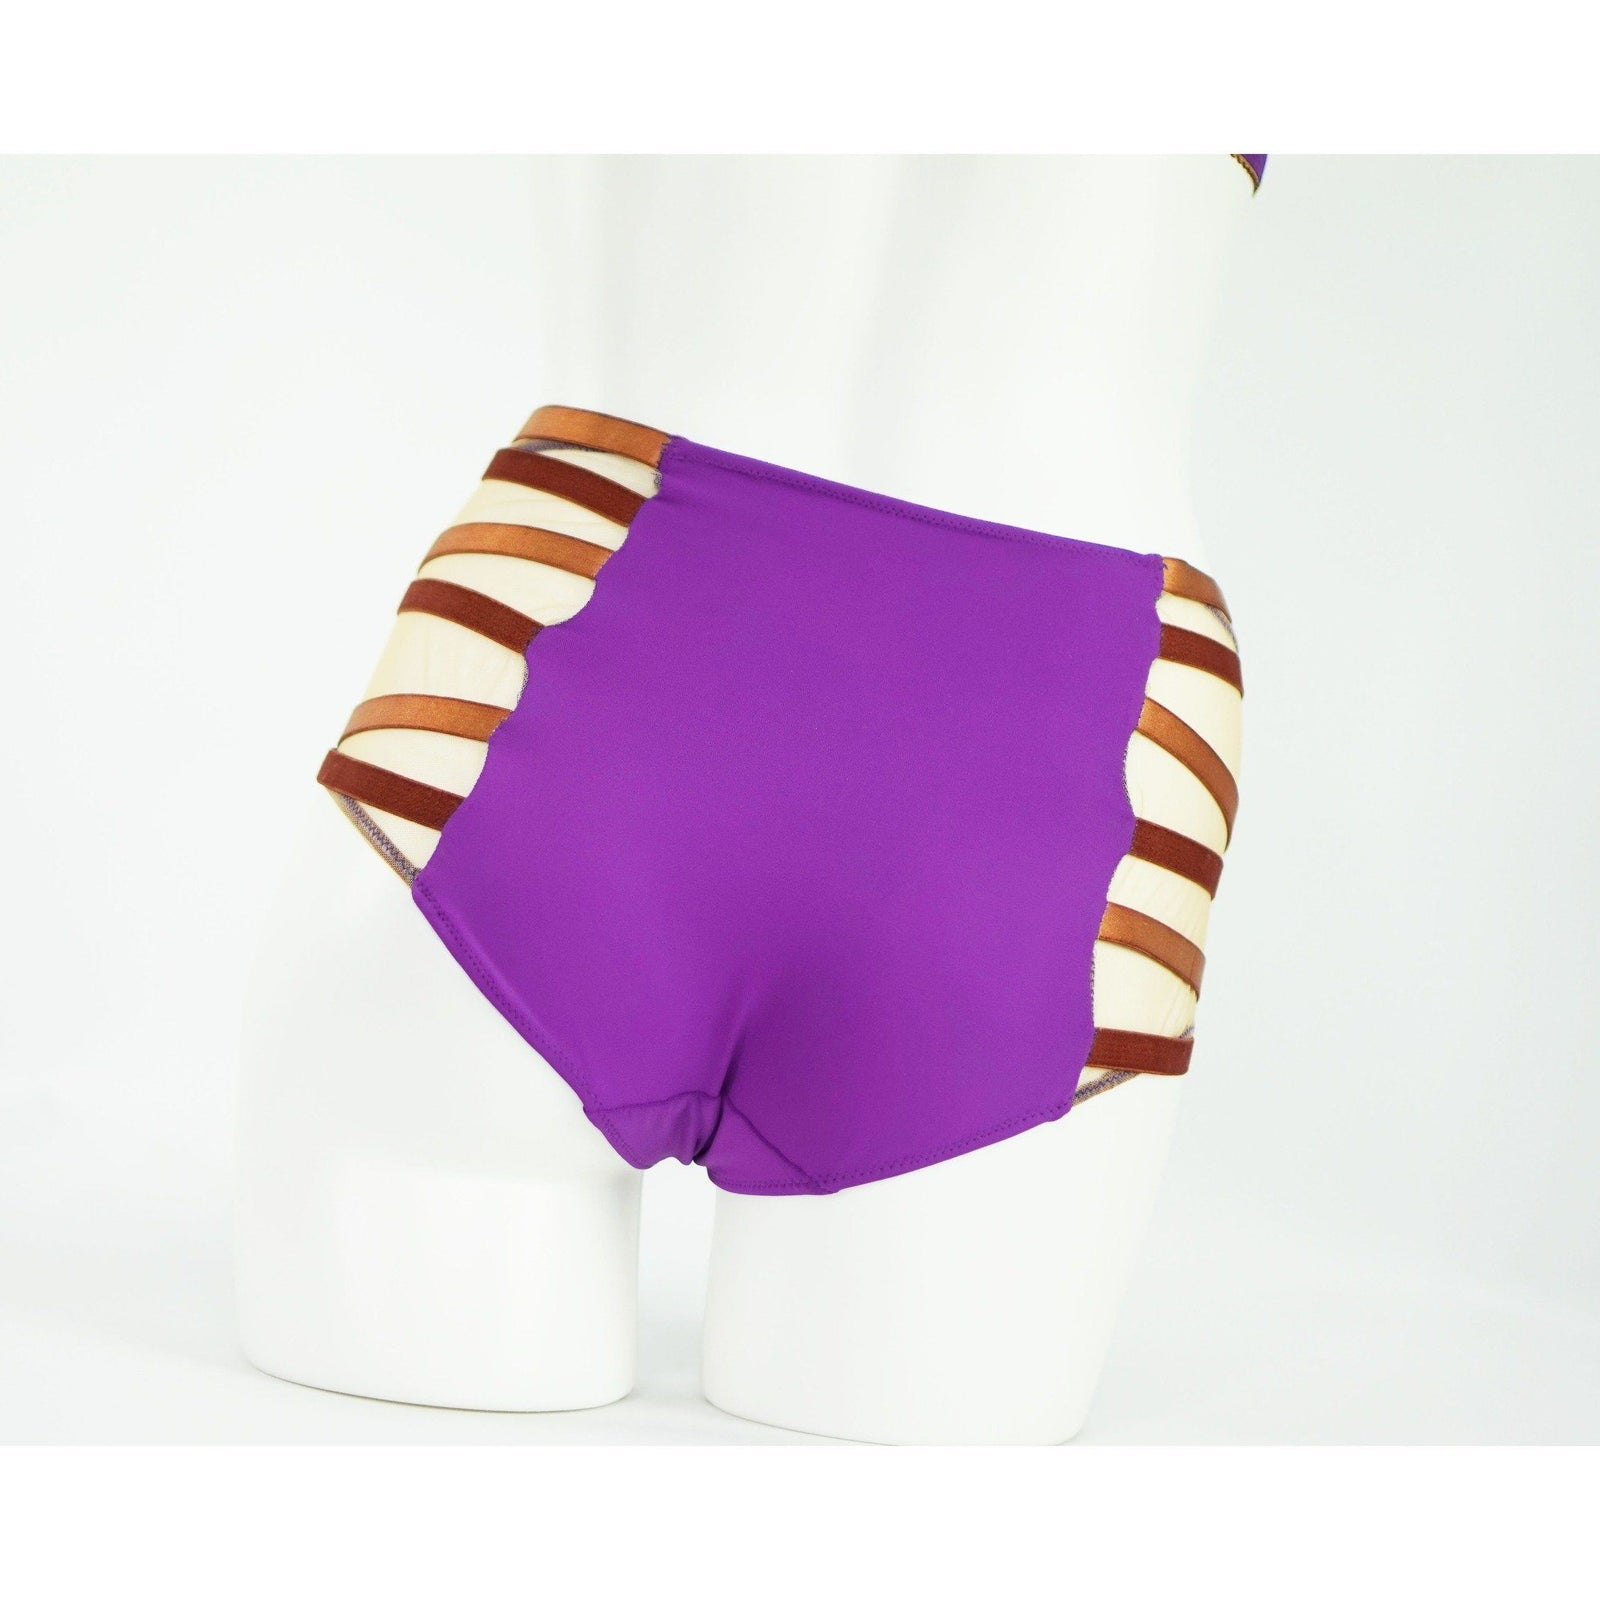 Panties - Reesa Faye Tribal Highwaisted Brief|  Purple And Bronze |  Bondage Straps